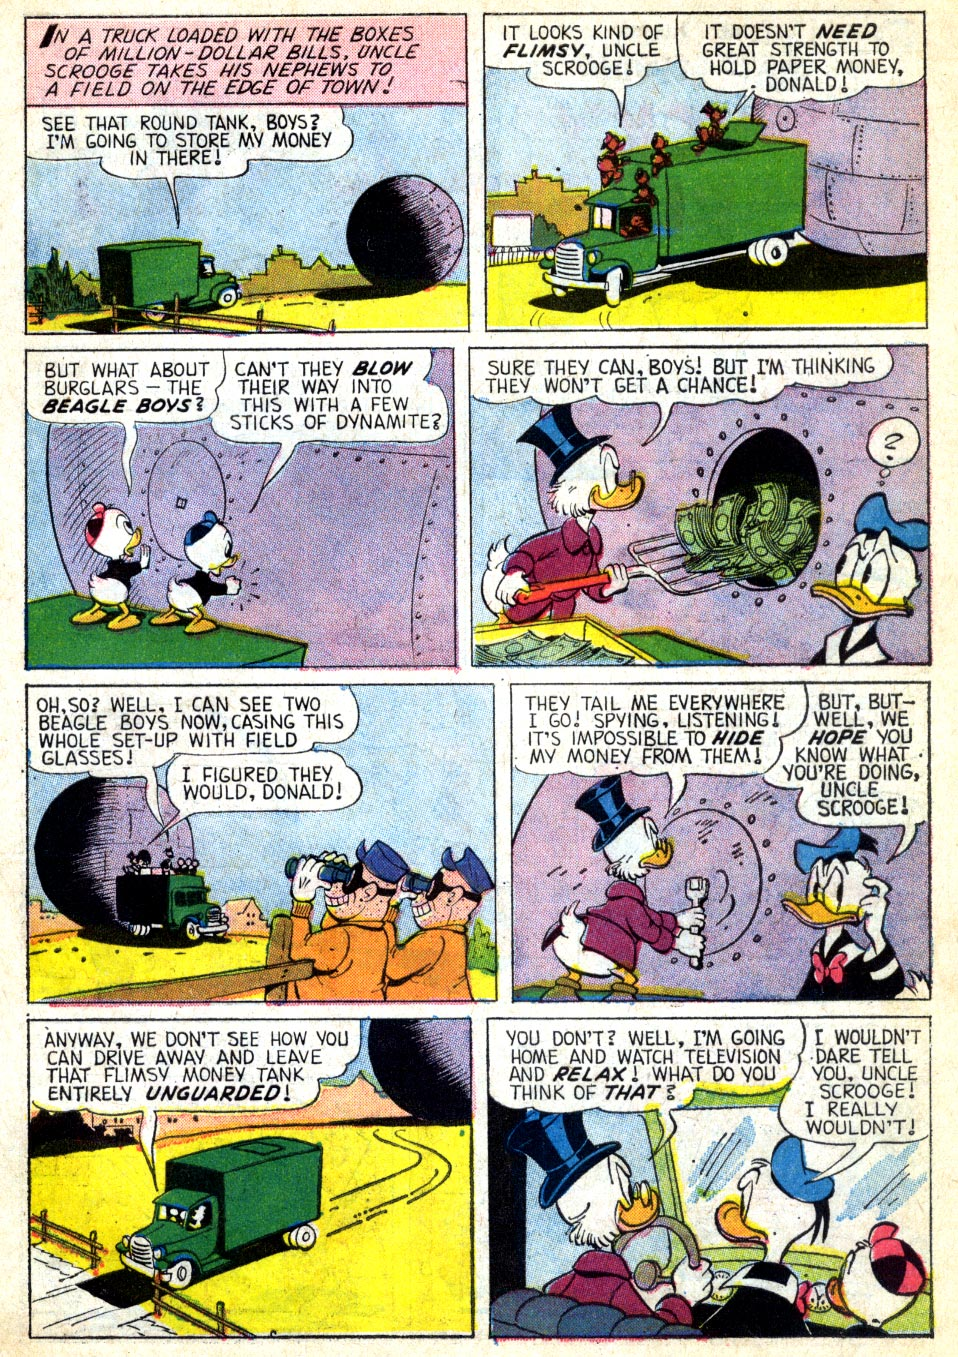 inefree.com/uncle-scroog #366 - English 26